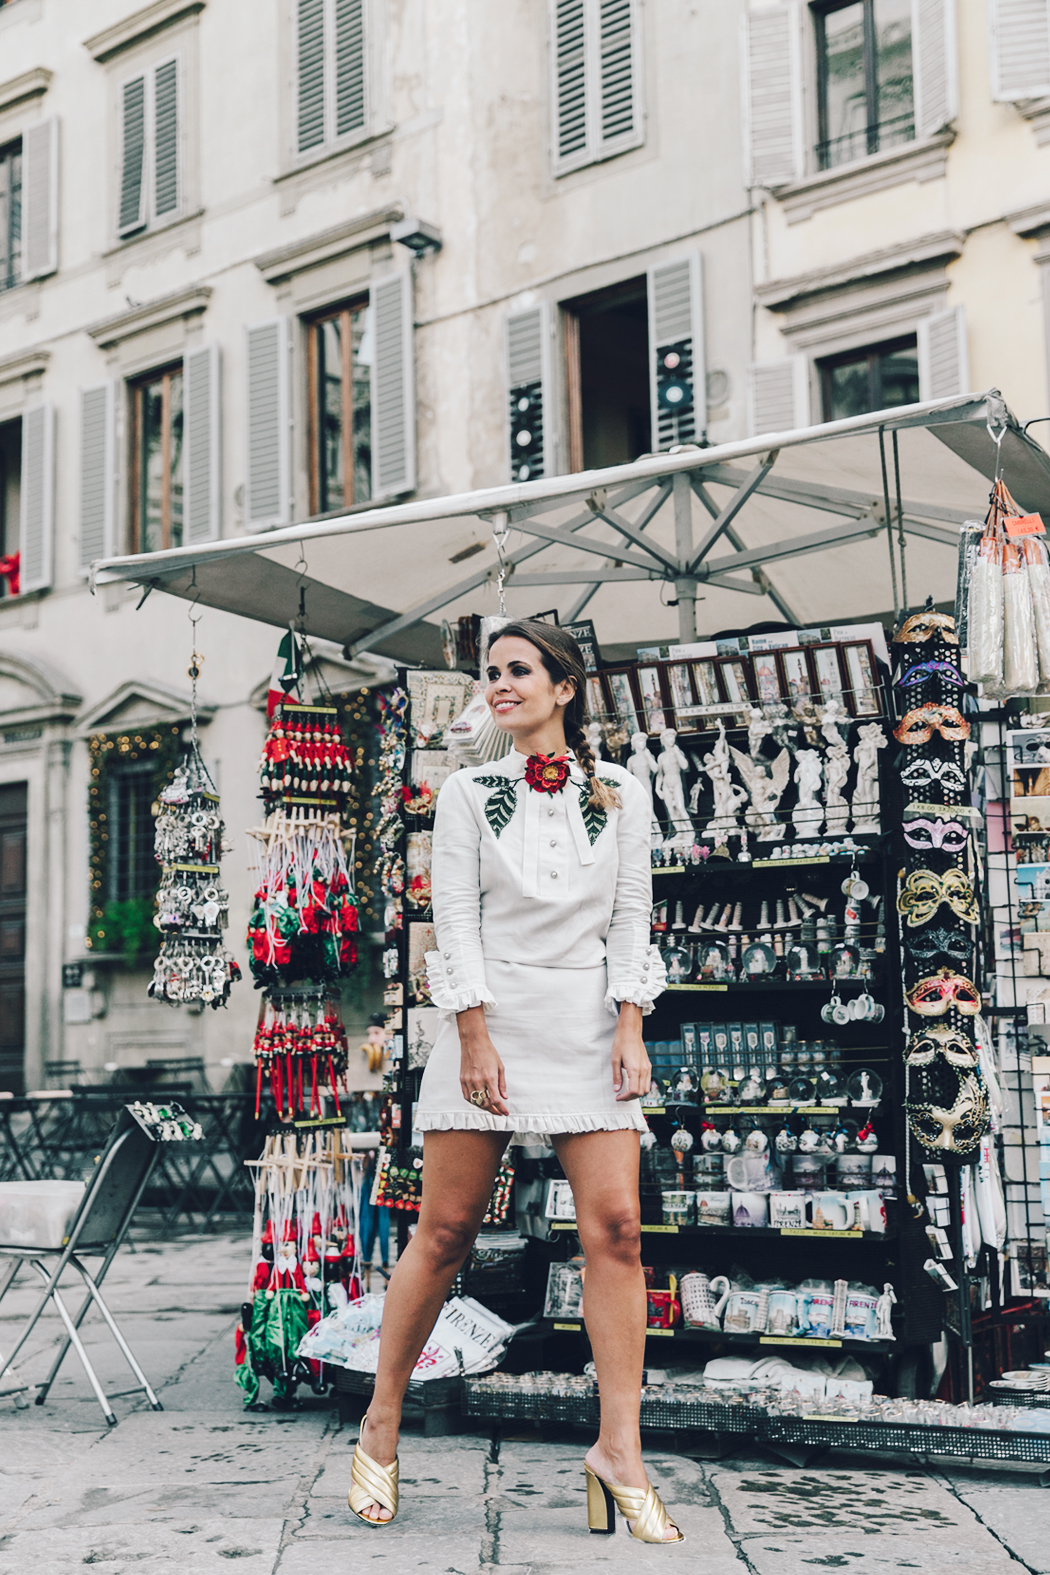 Firenze4Ever-Luisa_VIa_Roma-Gucci_White_Dress-Gucci_Gold_Sandals-Outfit-Florence-Street_Style-13